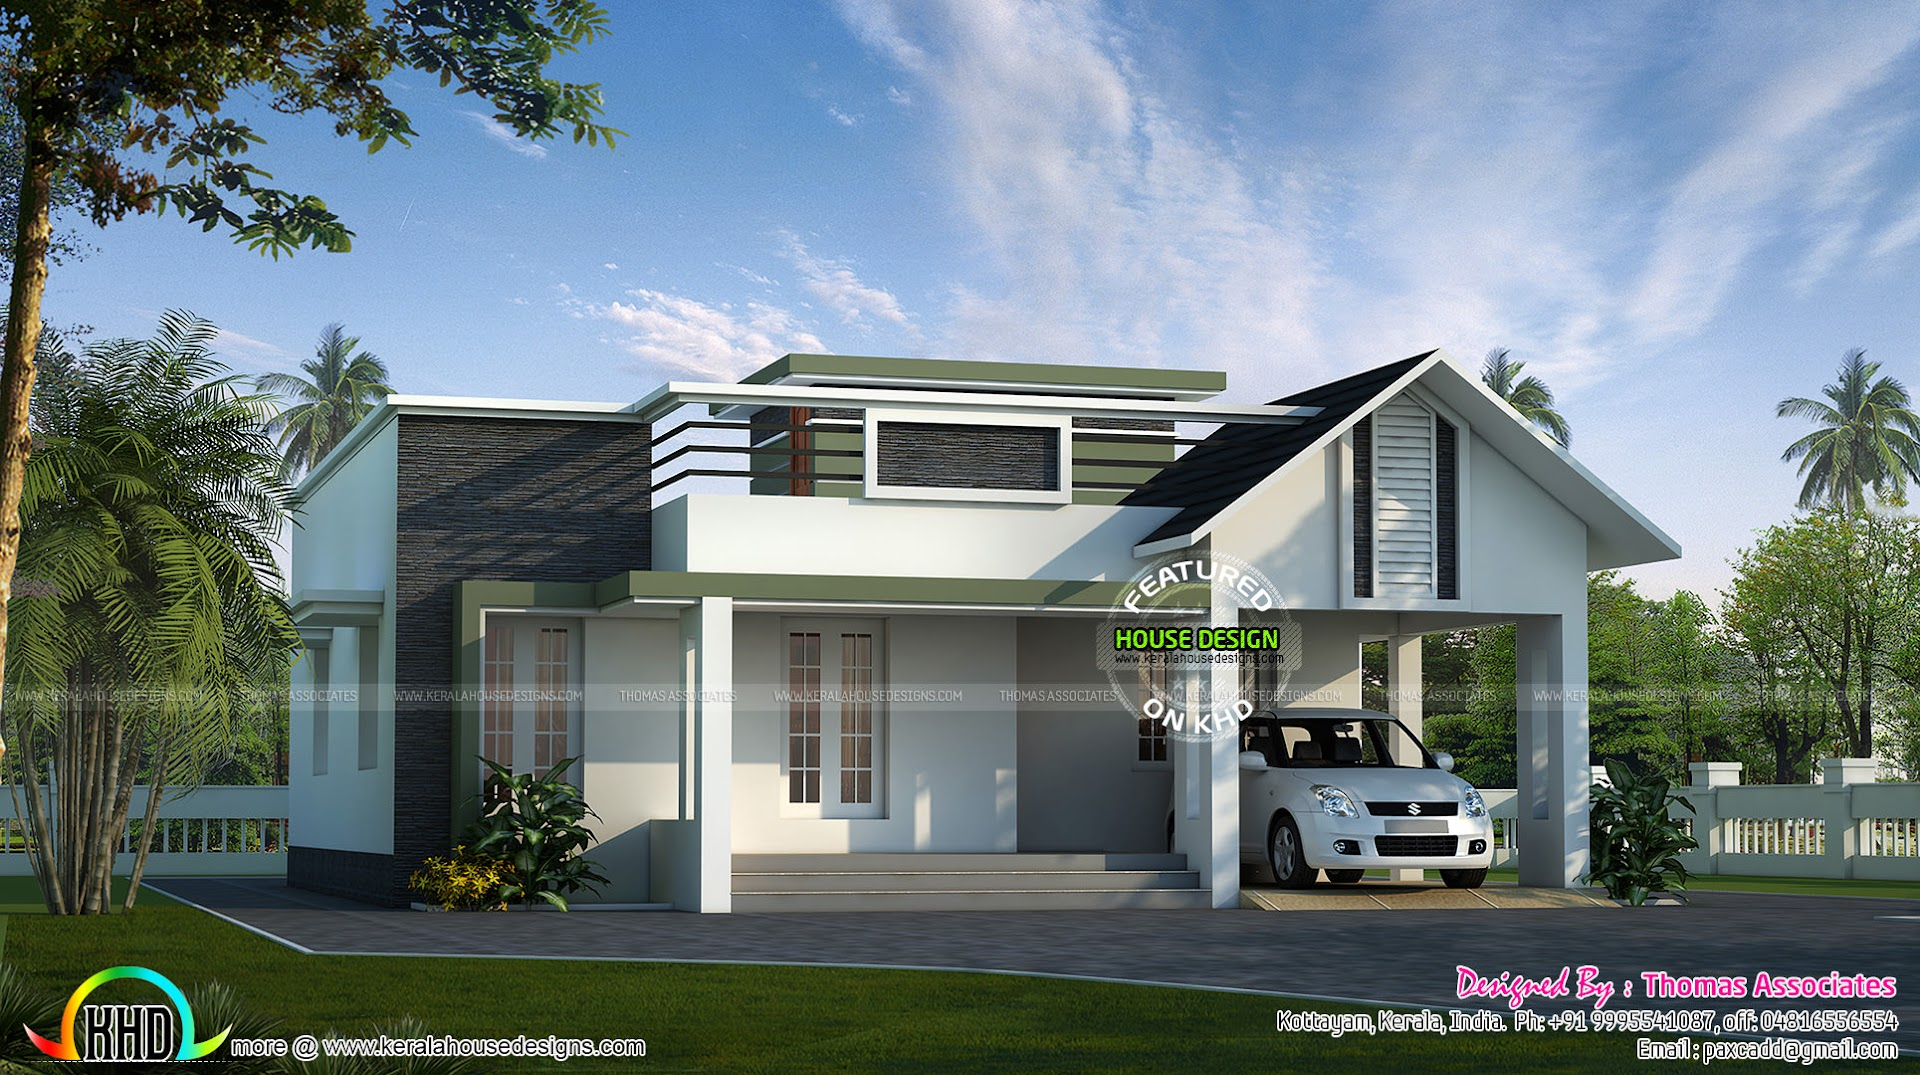 one floor house - 32+ Small Modern House Plans Under 1200 Sq Ft Images